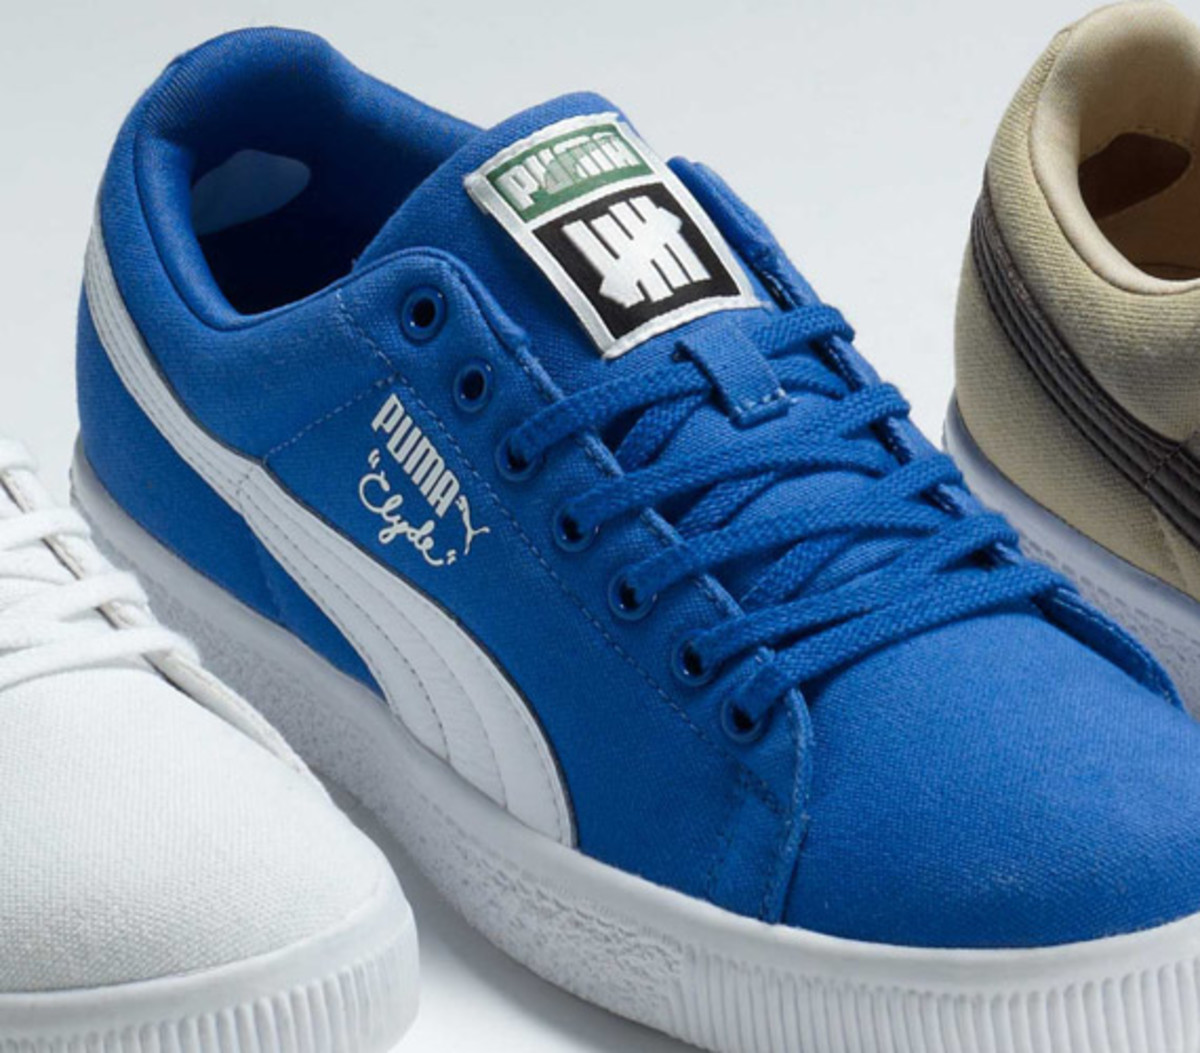 Undefeated-x-PUMA-Cali-Canvas-Clydes-01